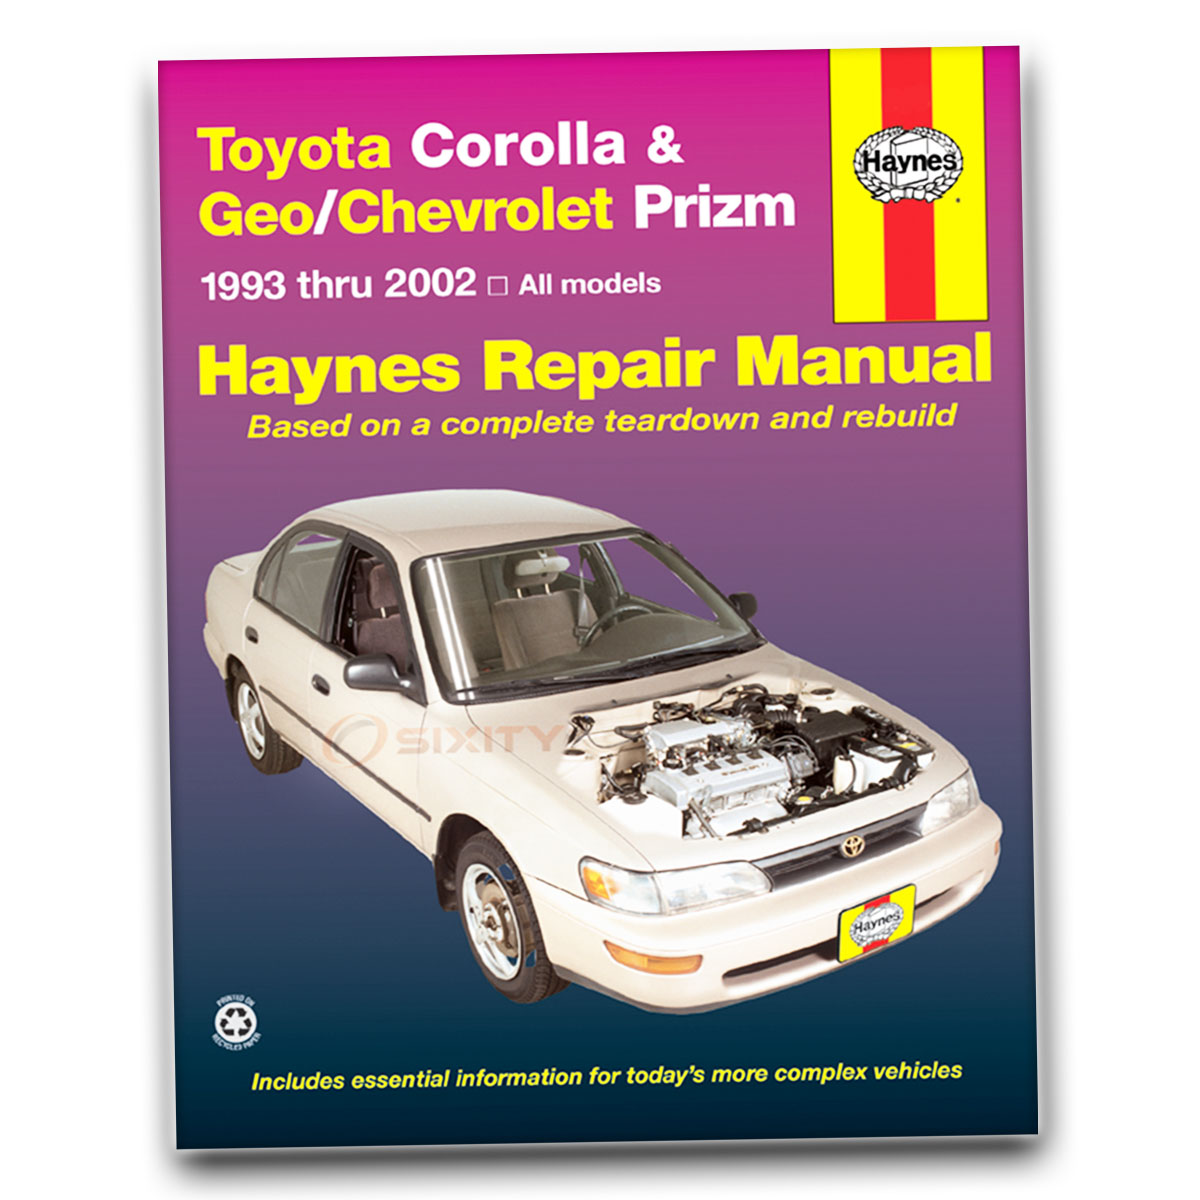 haynes repair manual for toyota corolla s ve dx ce base le shop rh ebay com  1980 1.8 Toyota Corolla 1980 1.8 Toyota Corolla